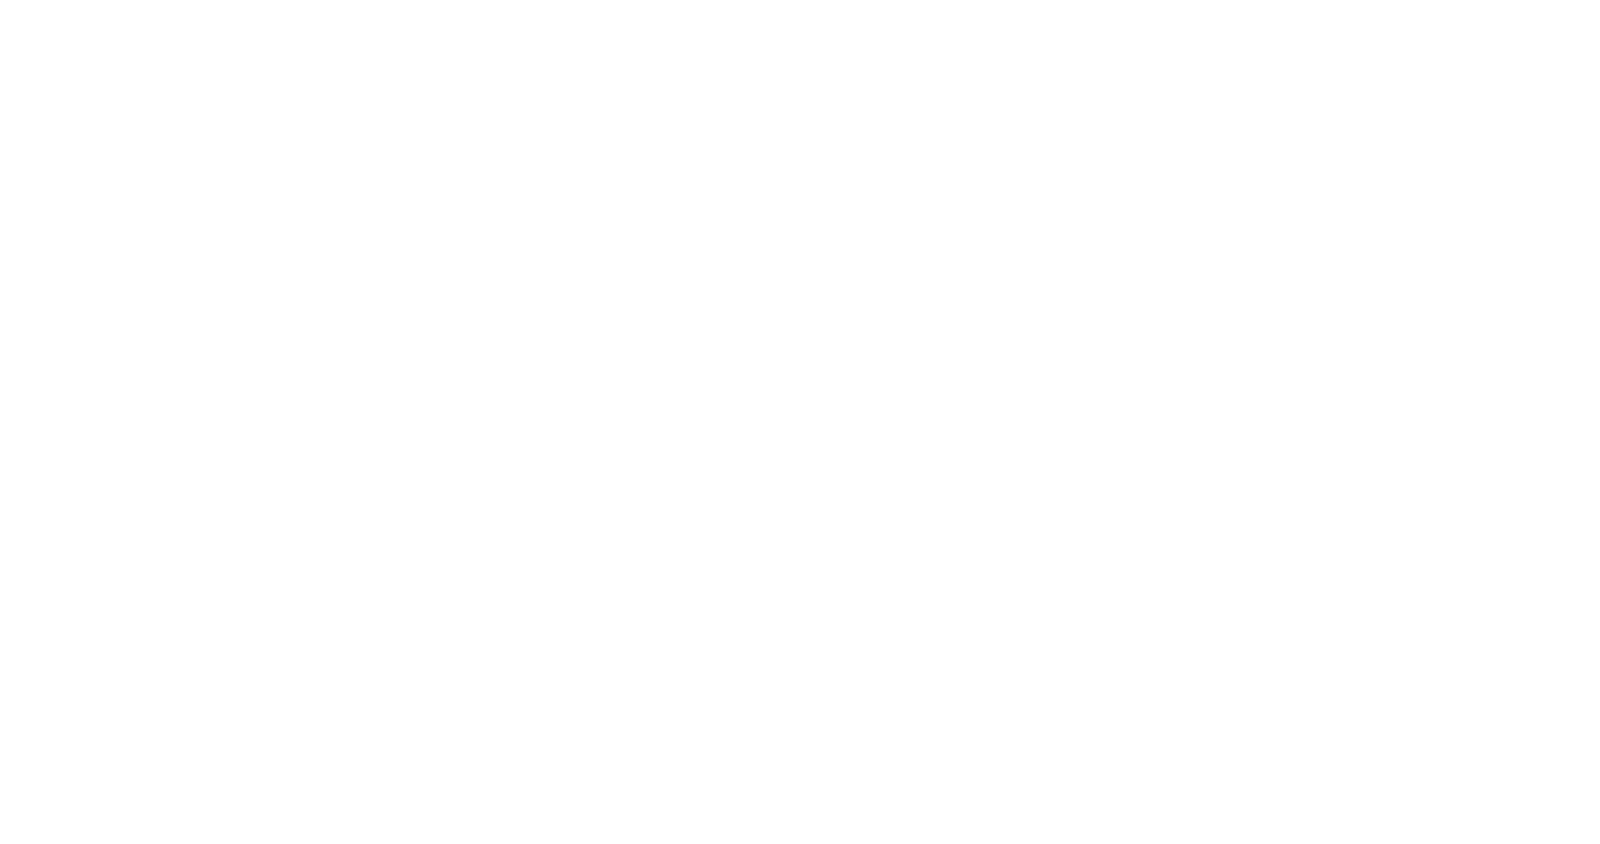 Advanced Property Search Nuway Realty